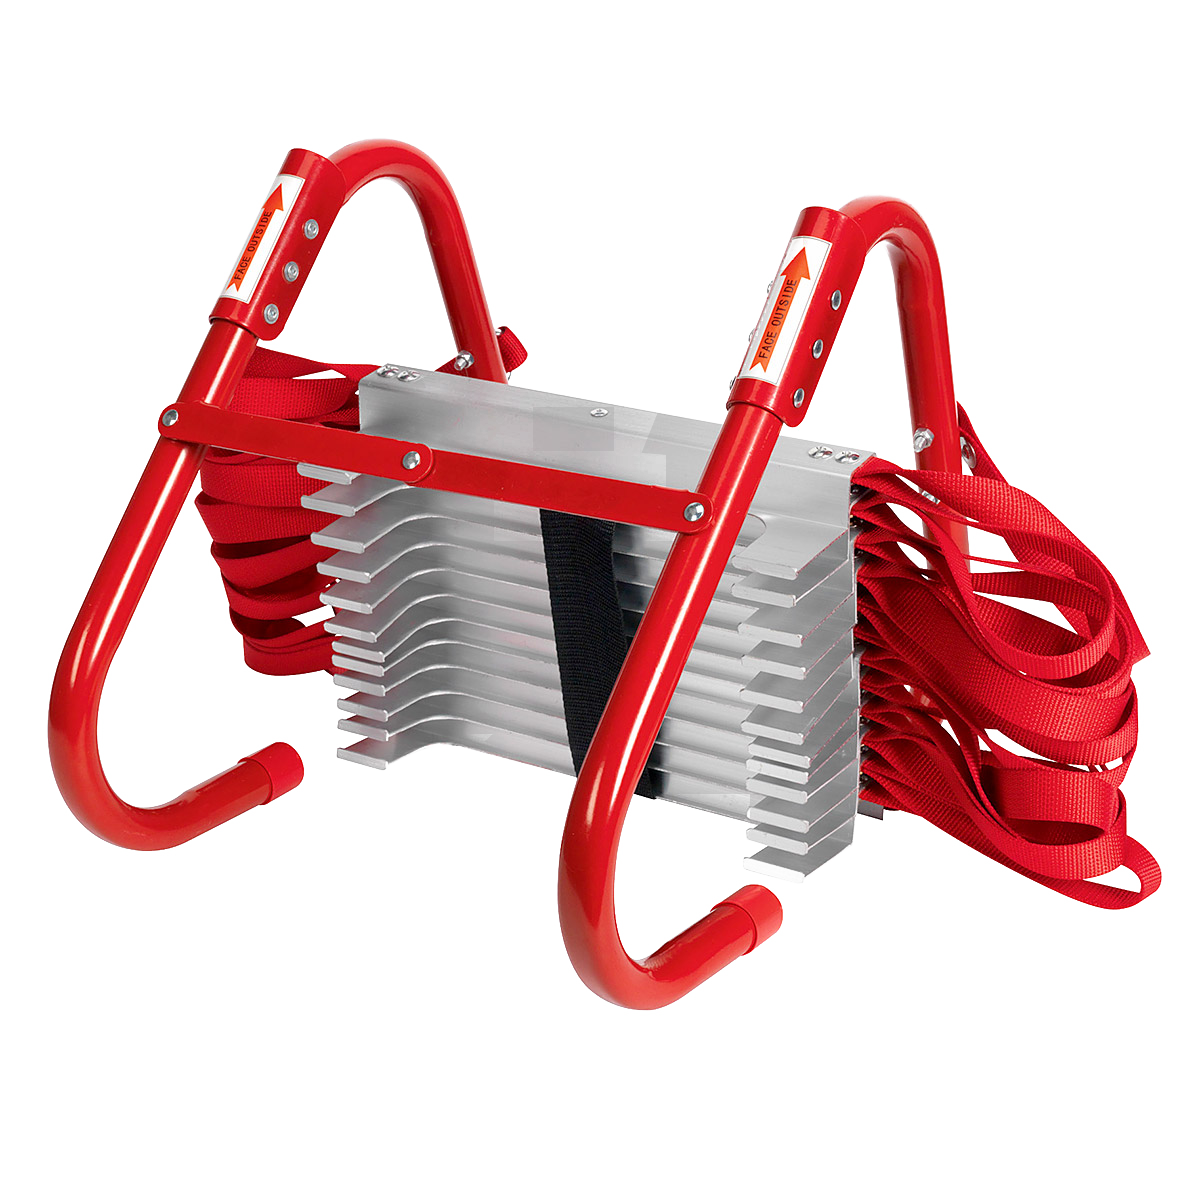 red safety home ladder